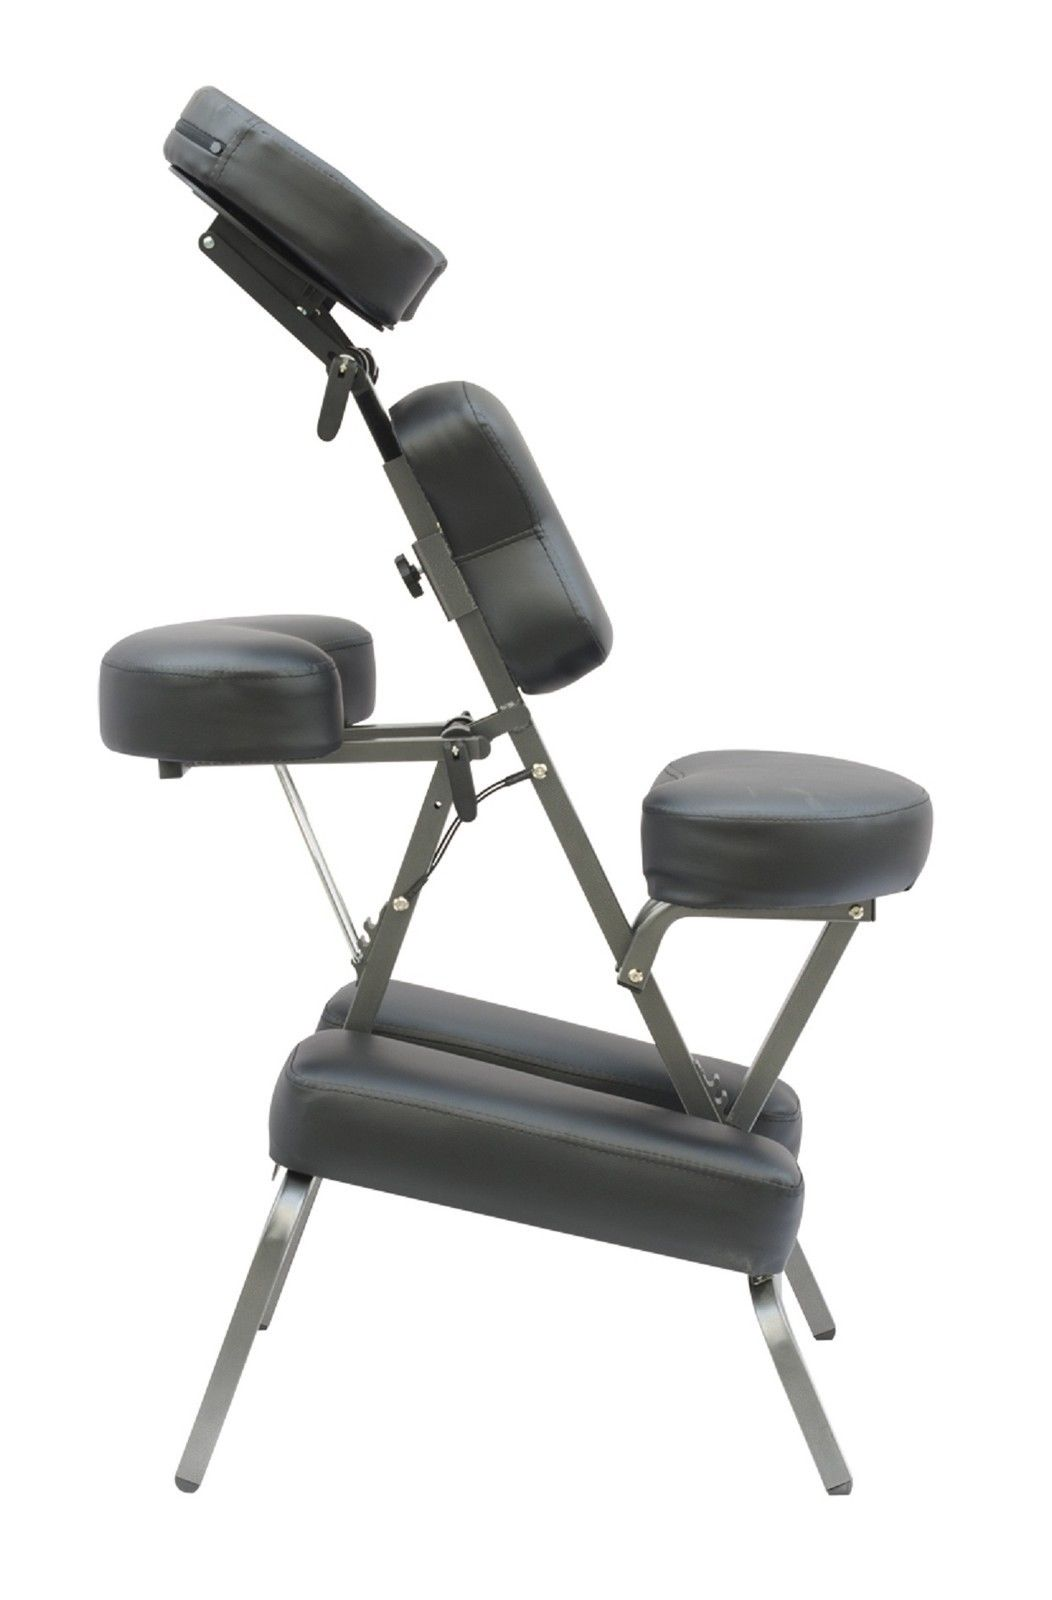 Portable Tattoo Chair Mcombo 4 Quot Portable Black Tattoo Chair Spa Free Carry Case